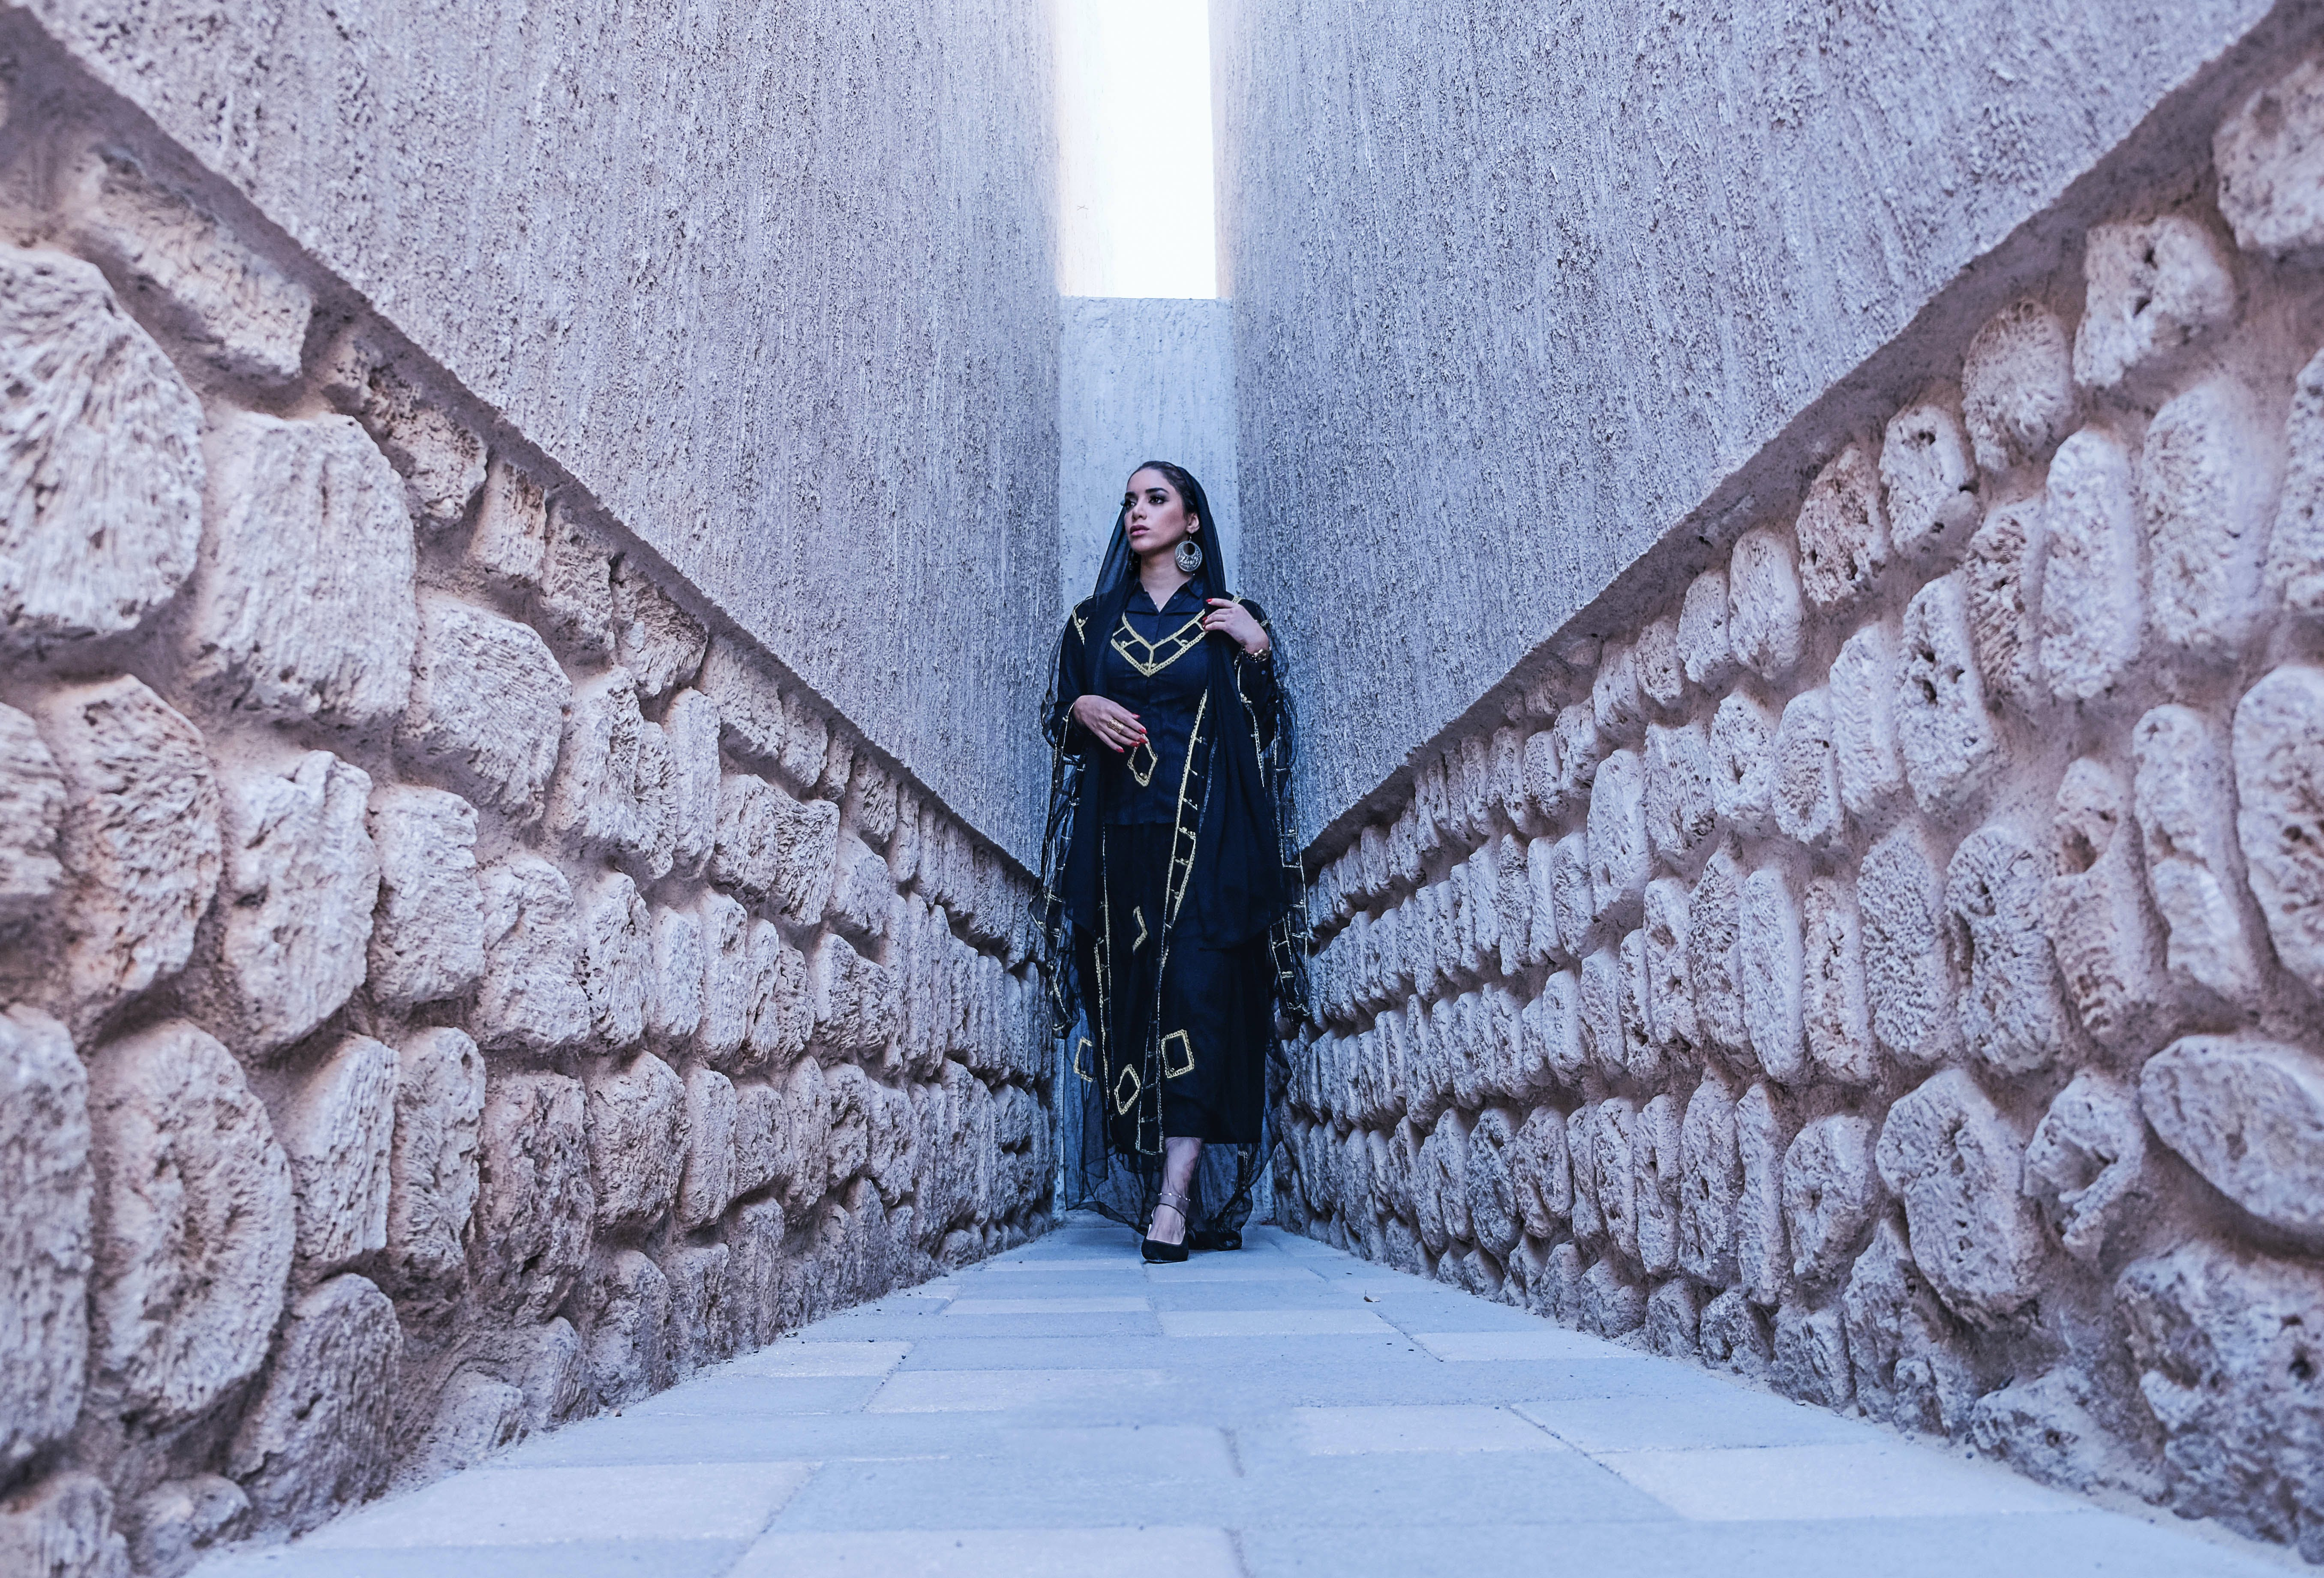 Woman in Black and Gold Traditional Dress Between Gray Concrete Walls